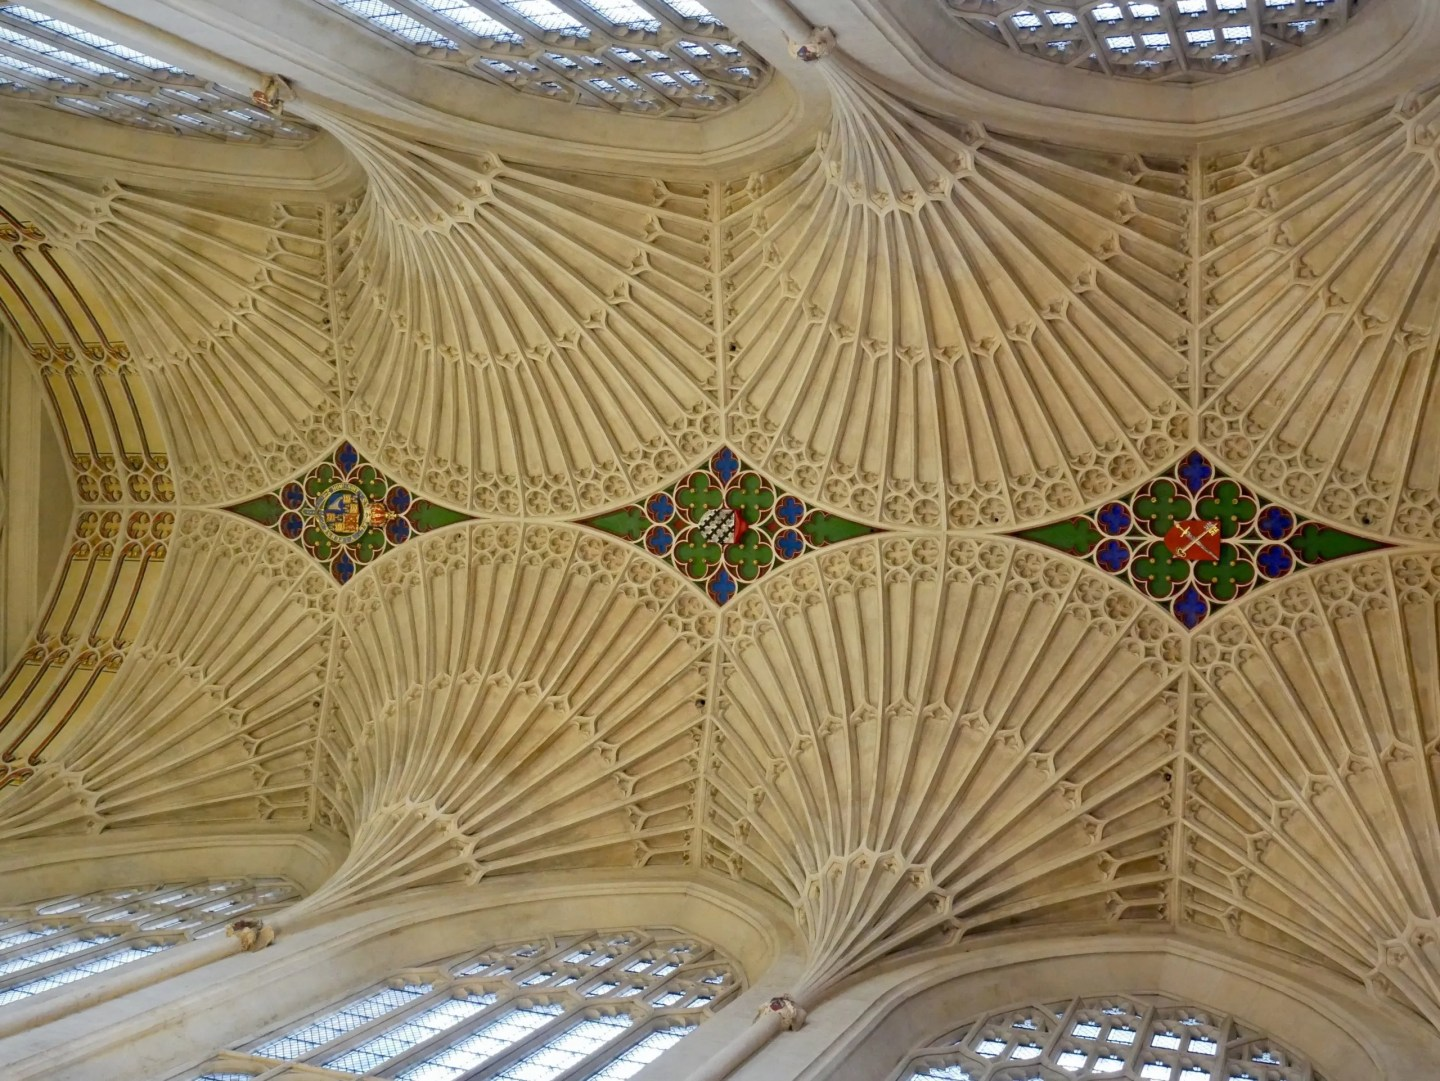 Bath Abbey fan vaulting